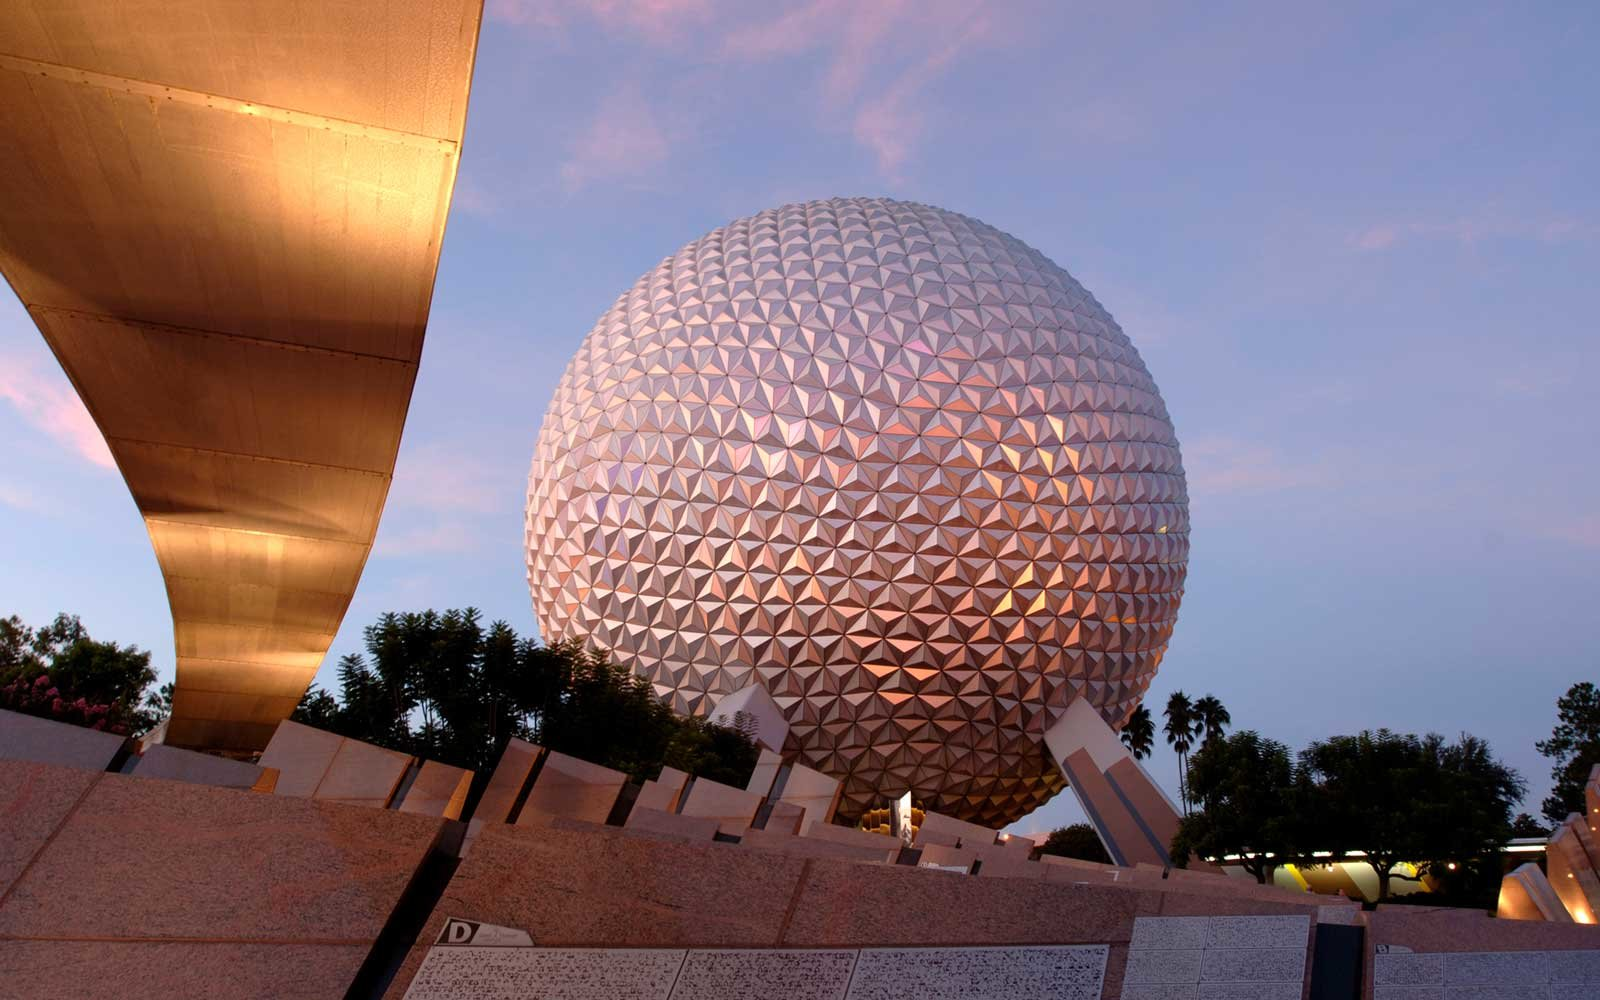 Walt Disney World, Epcot